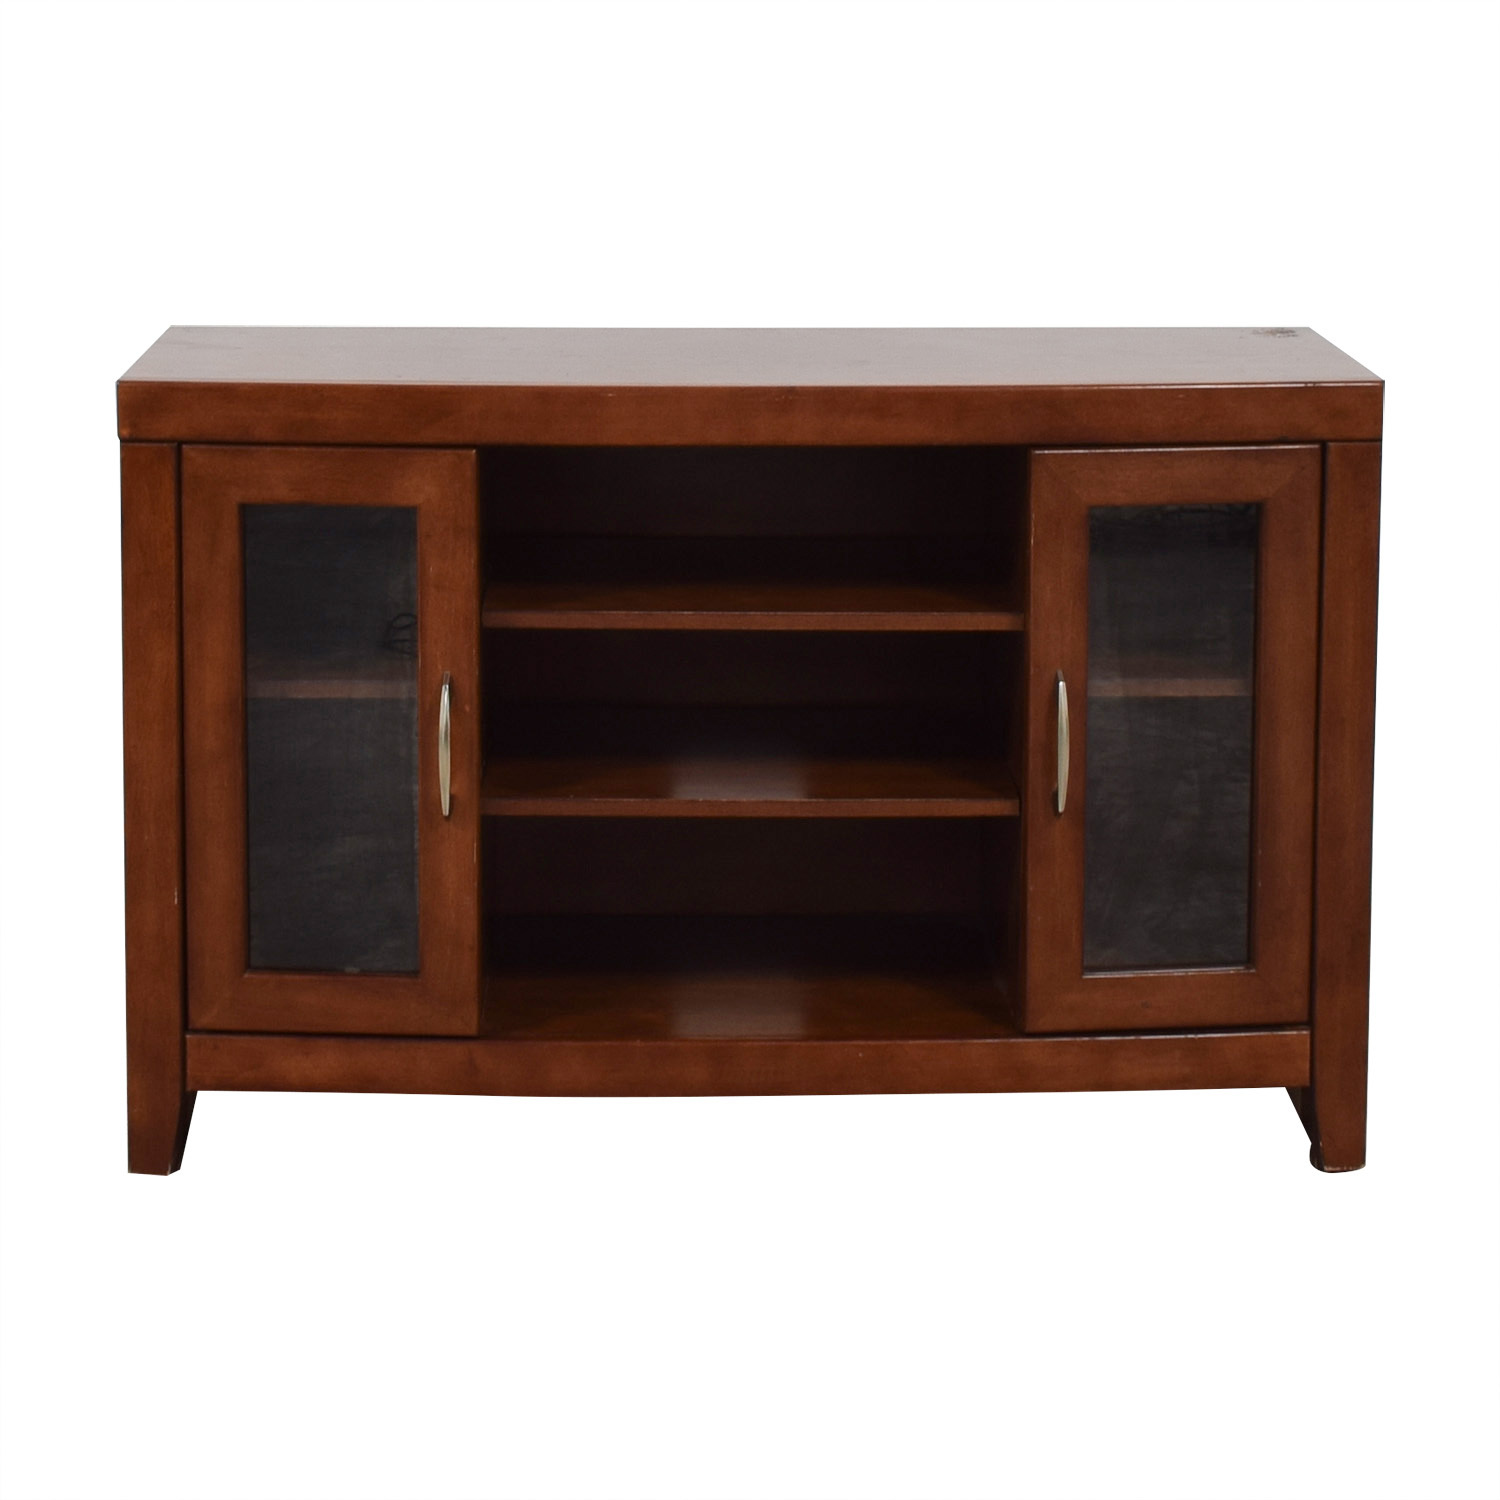 shop Raymour & Flanigan Del Mar Cherry TV Stand Raymour & Flanigan Media Units